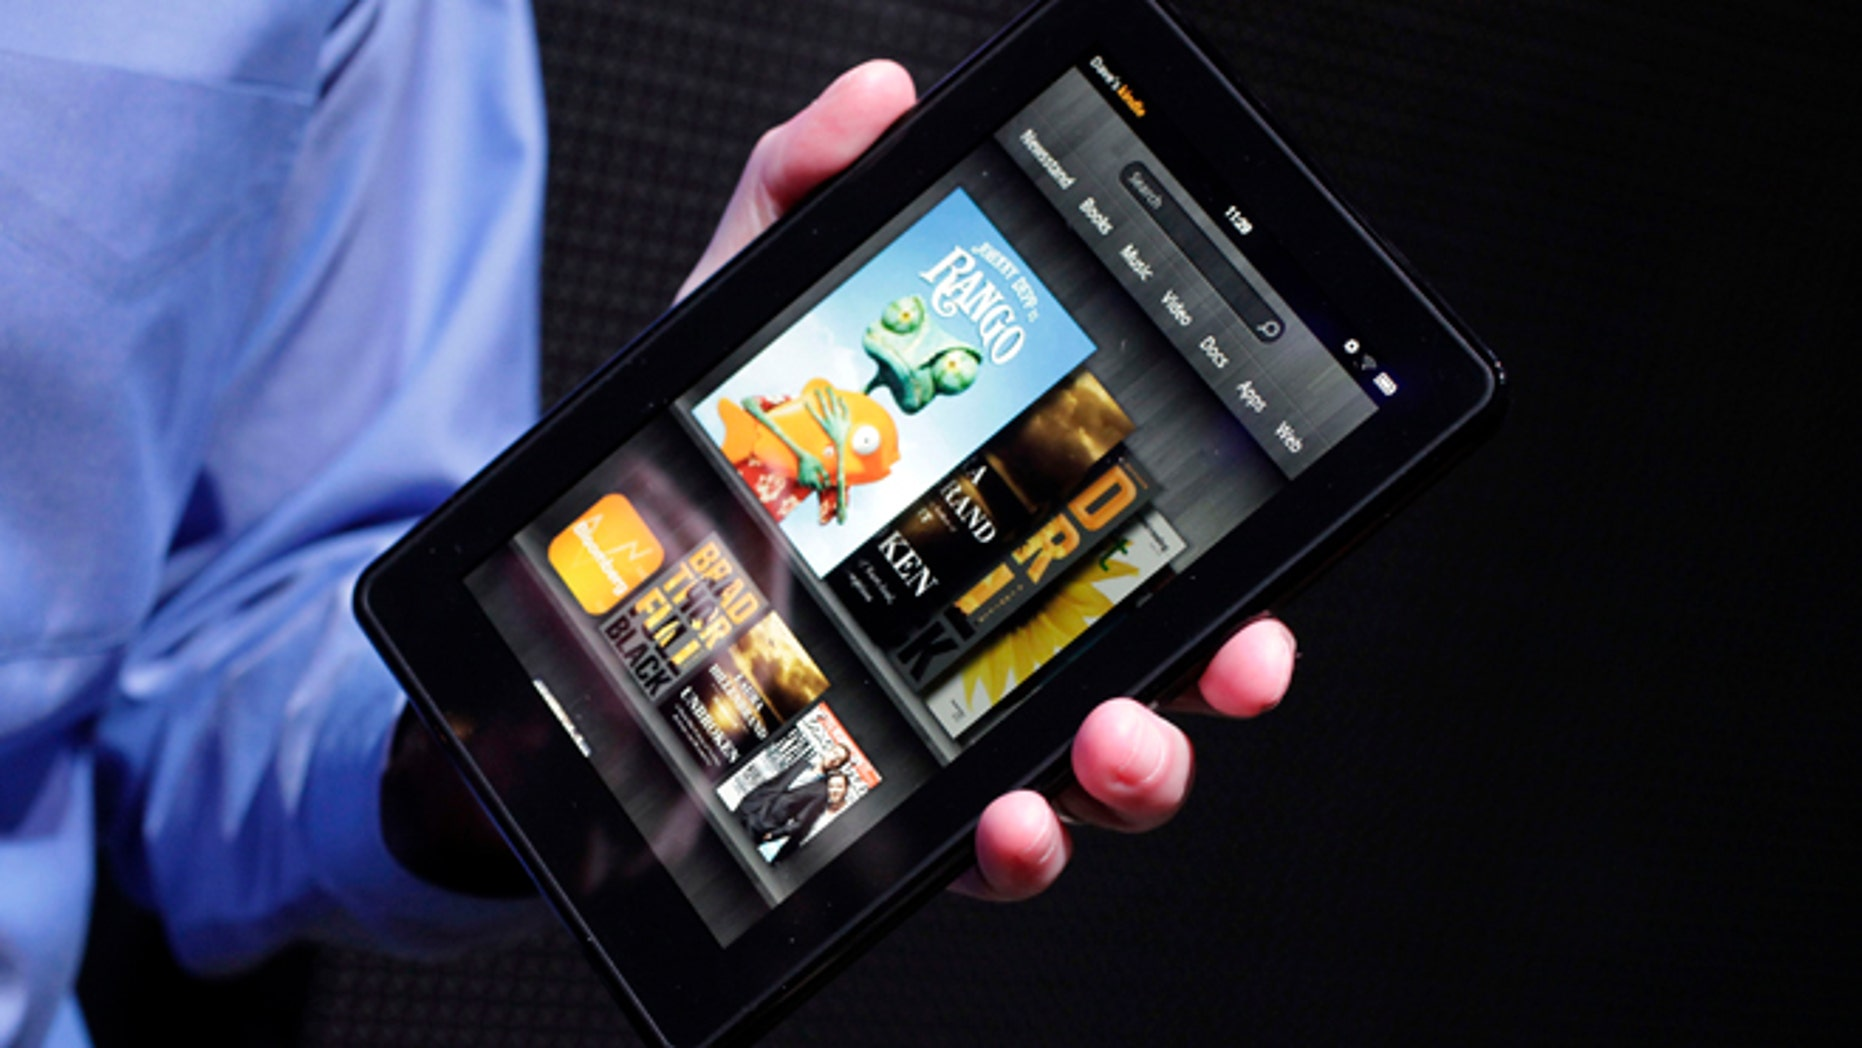 The original Kindle Fire is introduced at a news conference in New York on Sept. 28, 2011. Amazon.com quenched the Kindle Fire on Aug. 30, 2012, saying its first tablet computer is now sold out. The Internet retailer is widely expected to reveal a new model of the Fire Thursday.